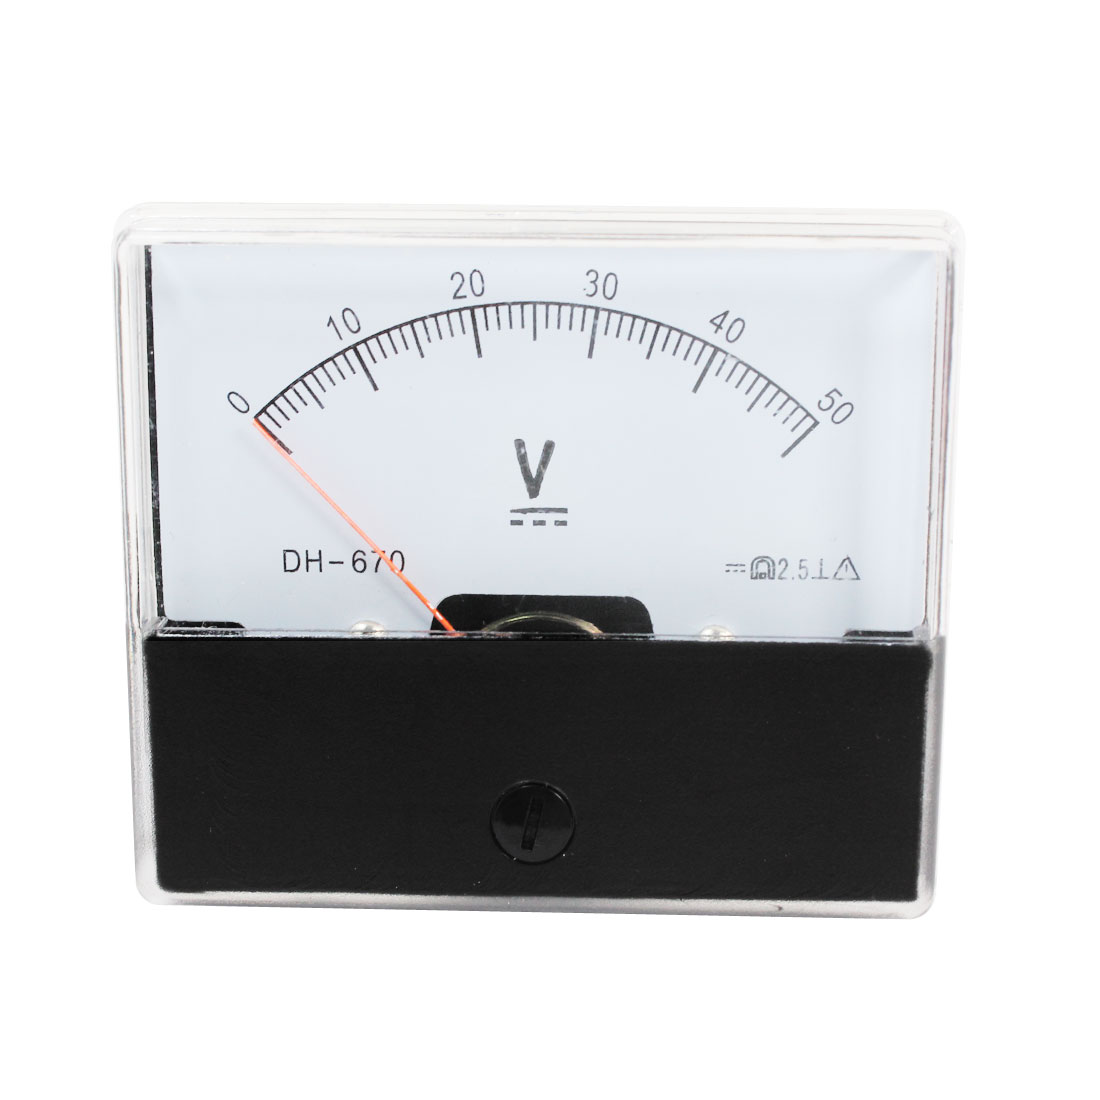 DC 0-50V Class 2.5 Rectangular Analog Volt Panel Mount Meter Gauge